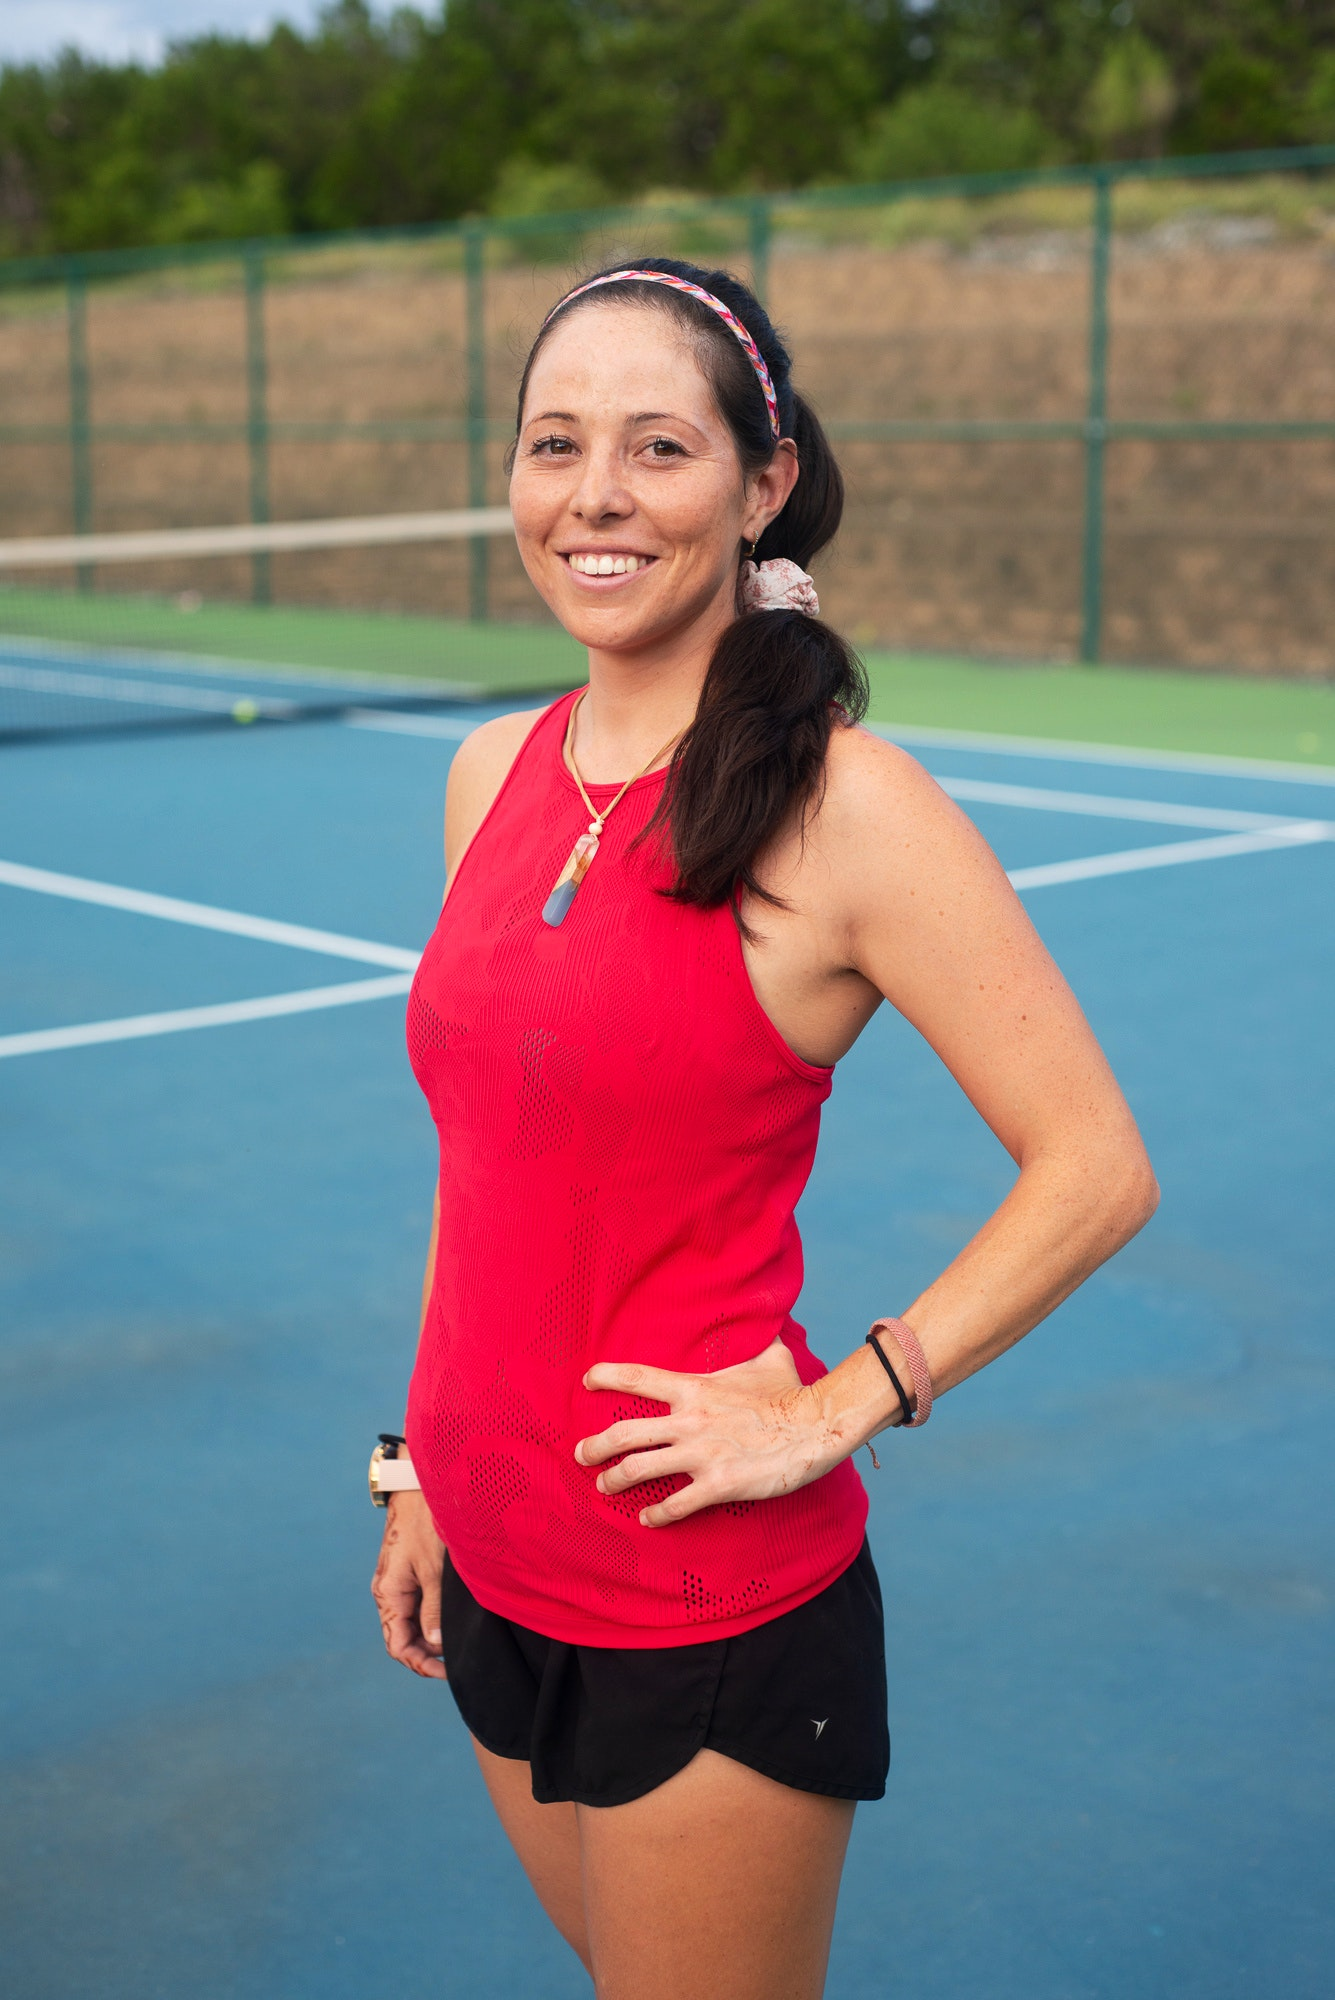 Katie D. teaches tennis lessons in Universal City, TX